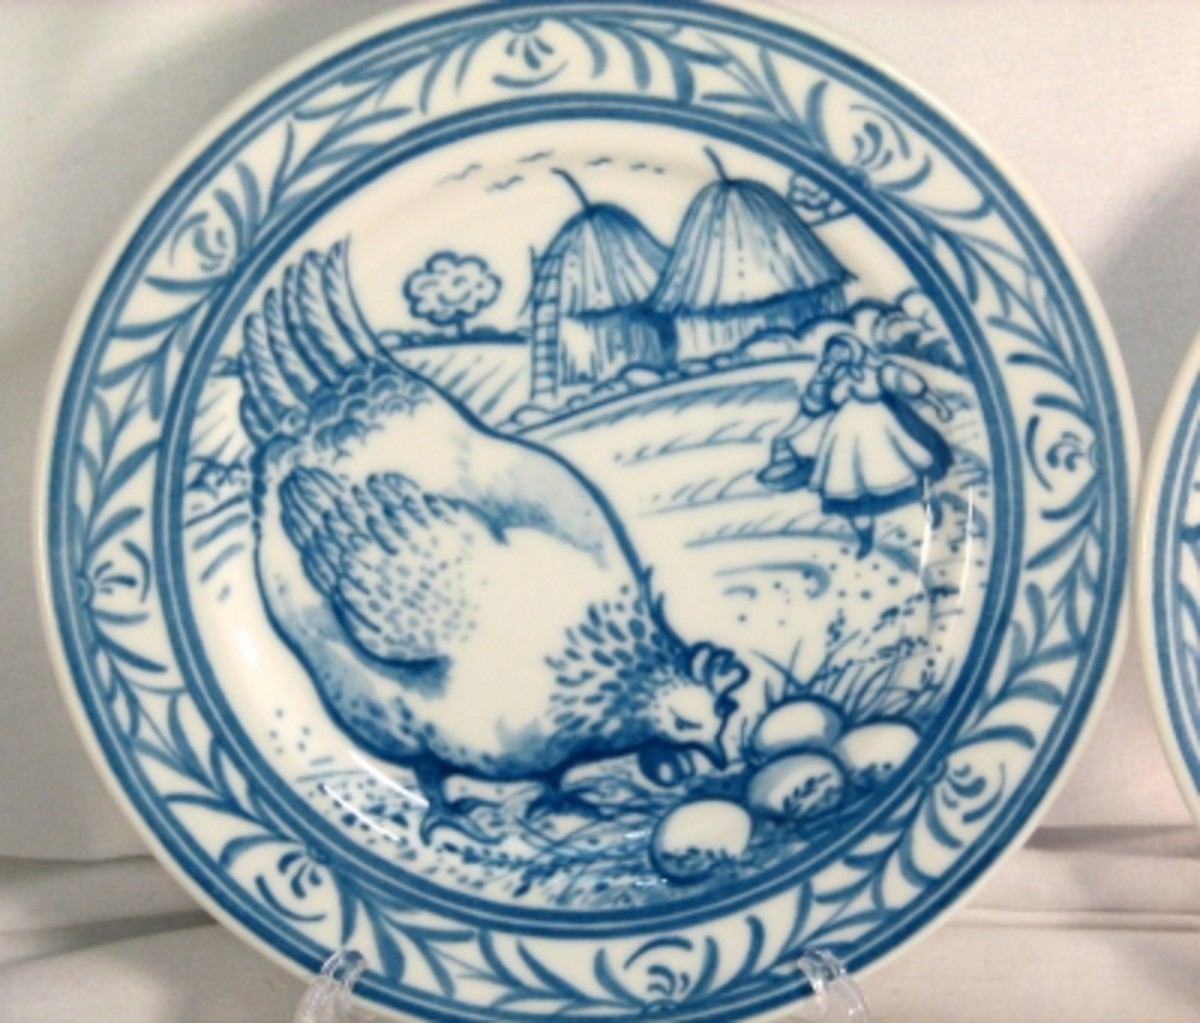 Charming Chicken Plate - Salad plate from the Brittany pattern set by Williams-Sonoma